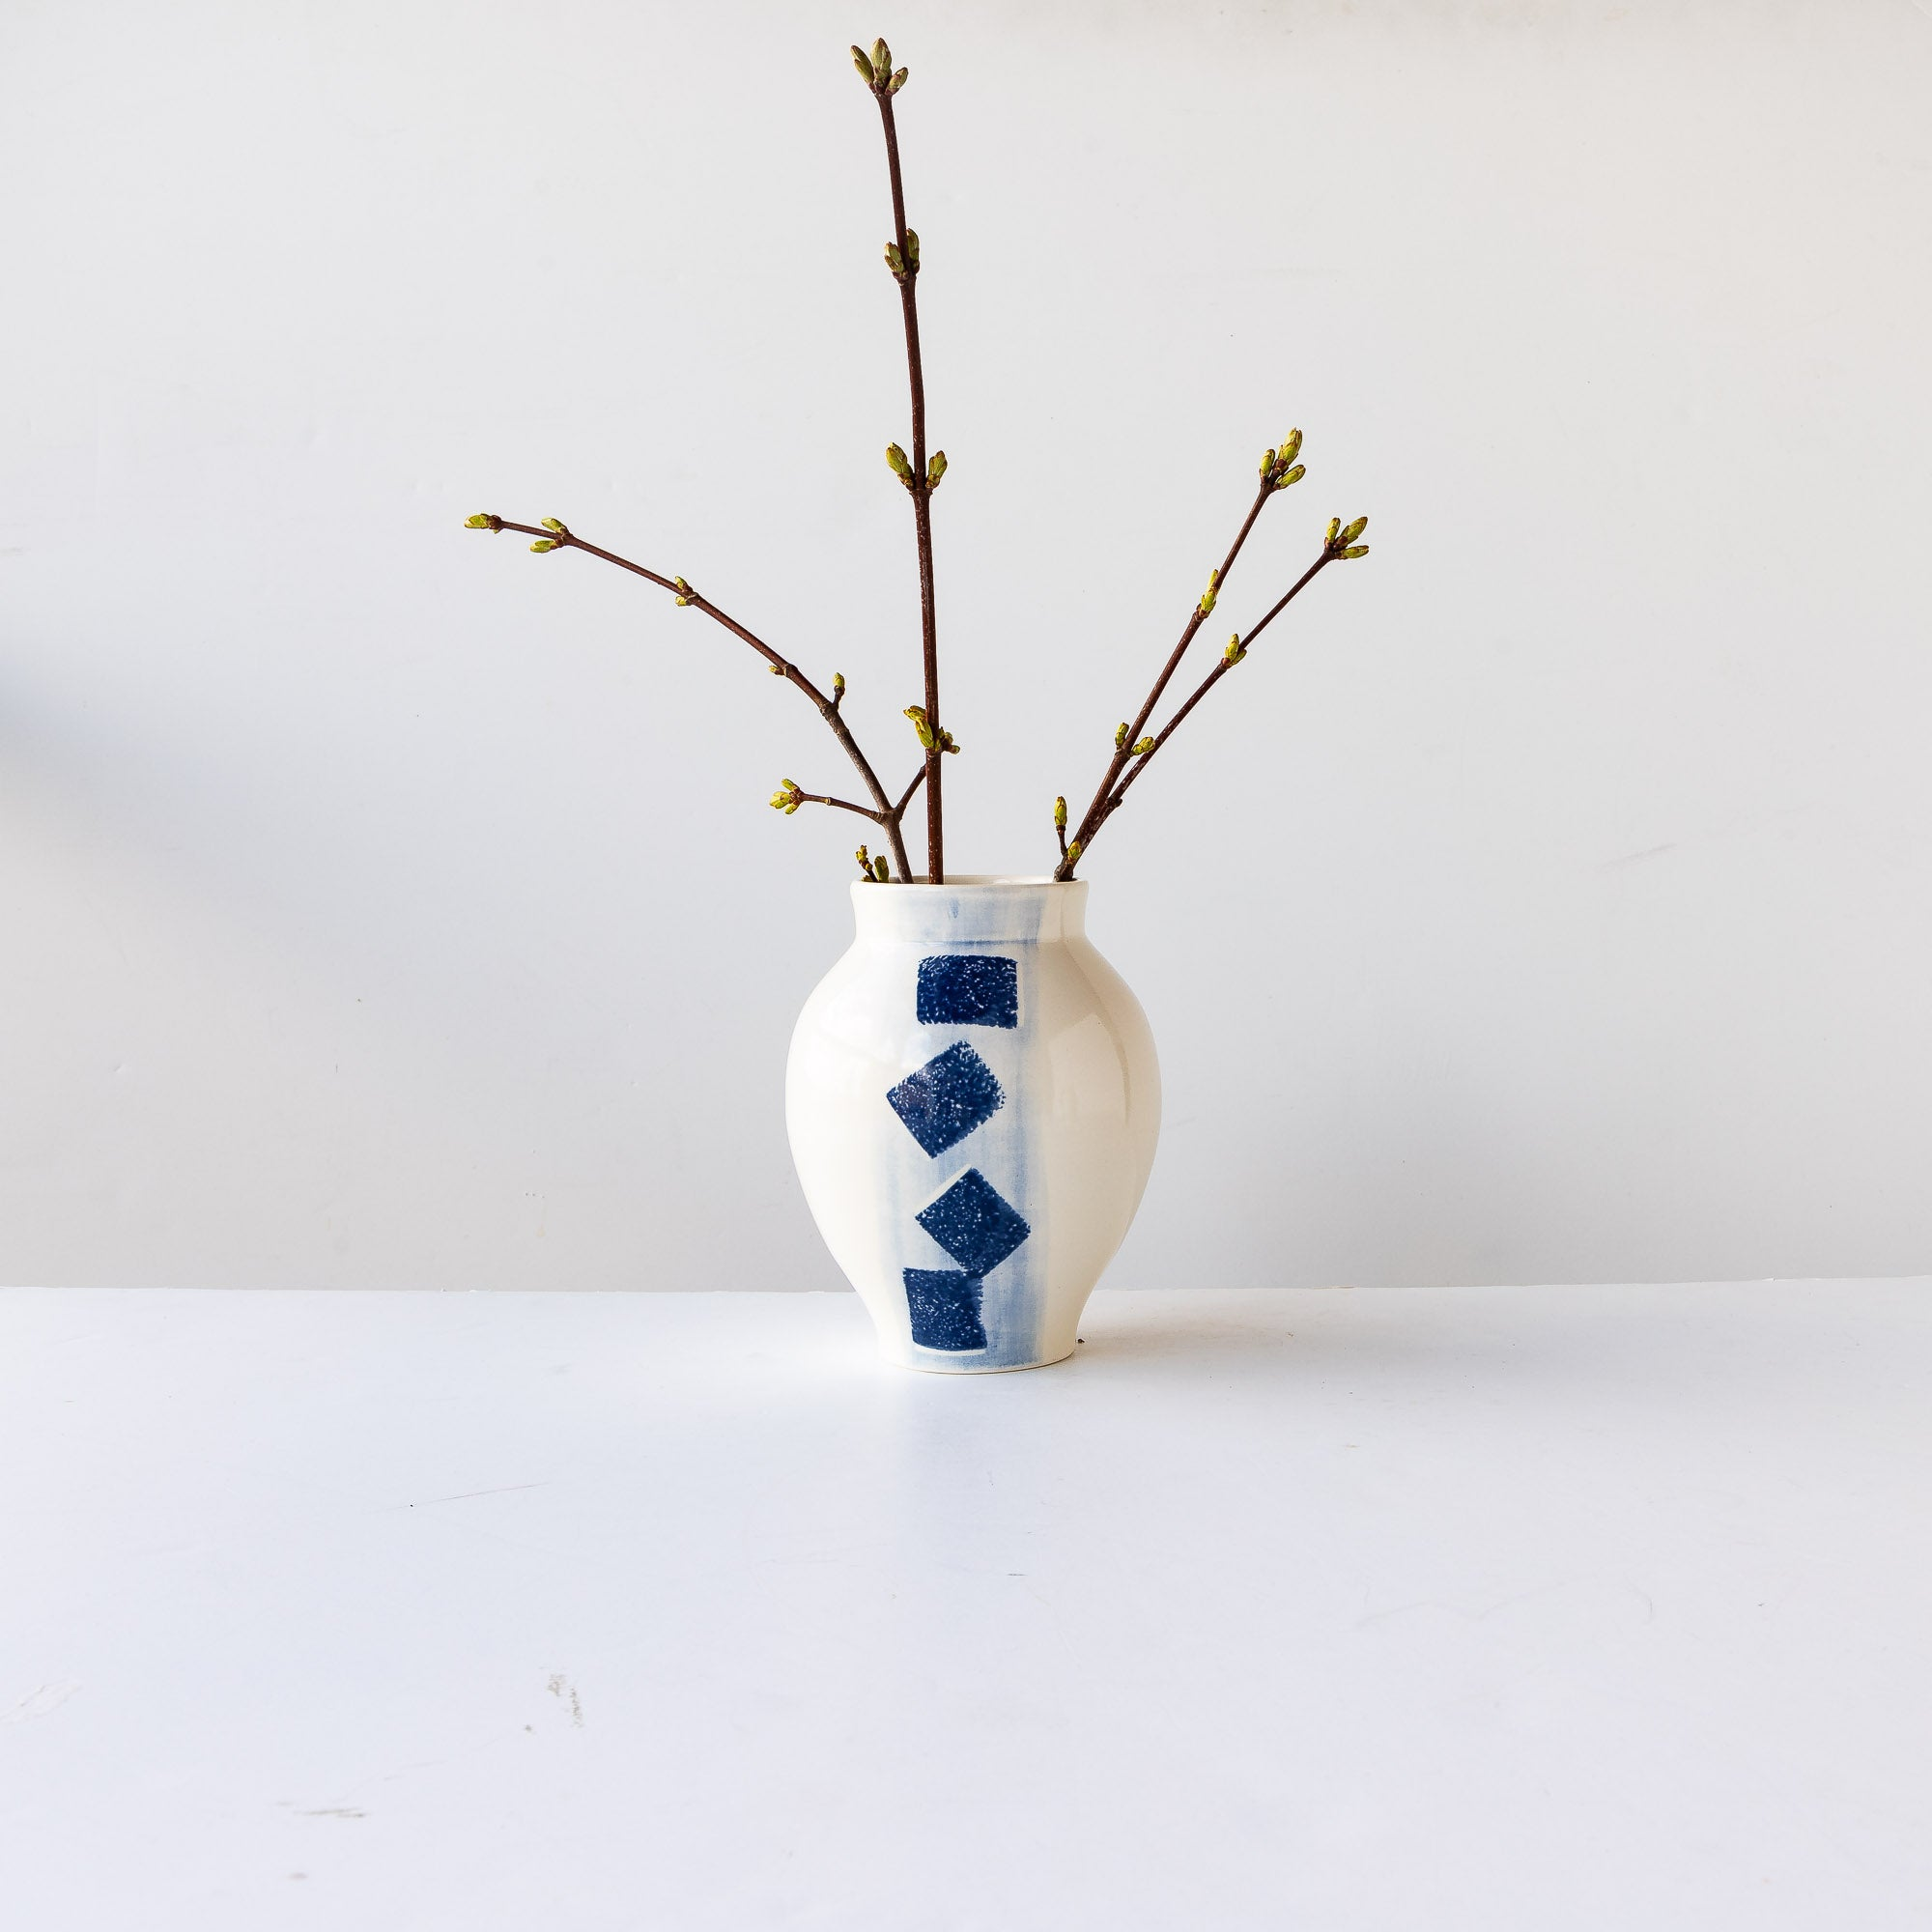 Small Handmade Vase in White & Blue Porcelain - Sold by Chic & Basta